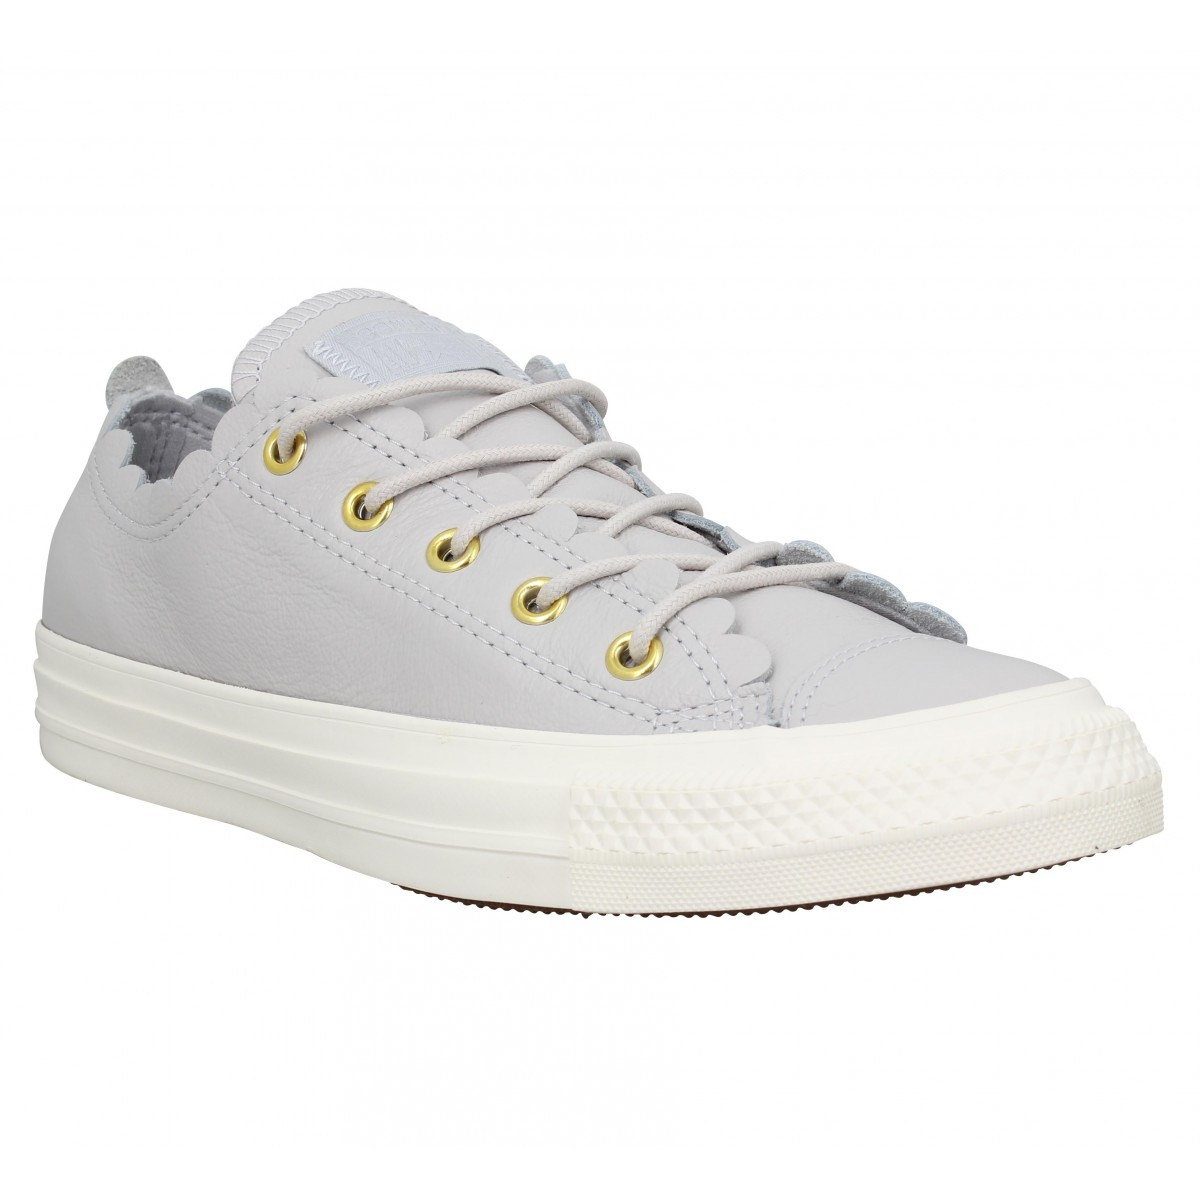 Baskets CONVERSE Chuck Taylor All Star Ox cuir Femme Mousse